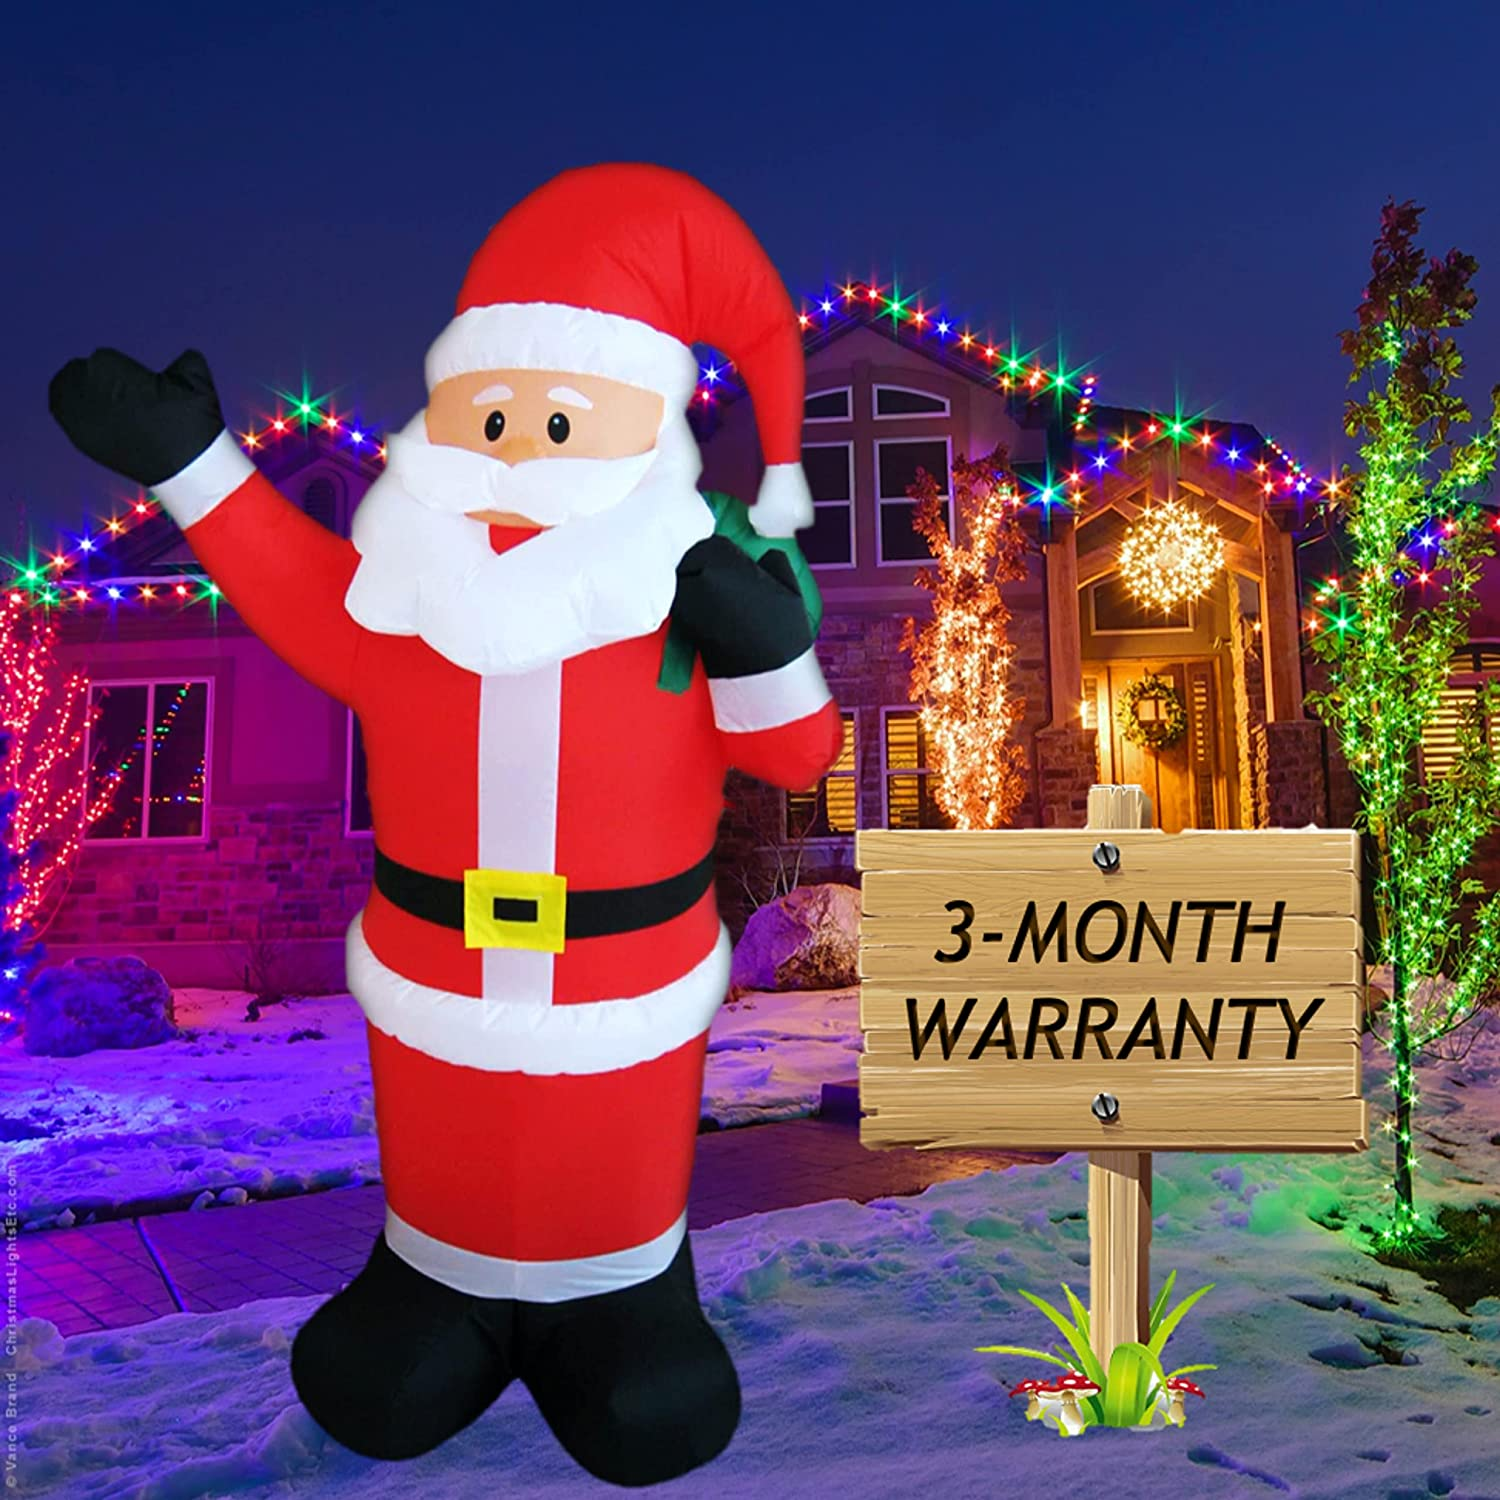 HolidayEssentials 5-FT Inflatable Christmas Santa Claus Decoration - Durable Blow Up Xmas Decor with Bright LED Lights for Indoor Outdoor Yard Lawn Garden Patio Blow Up Fan